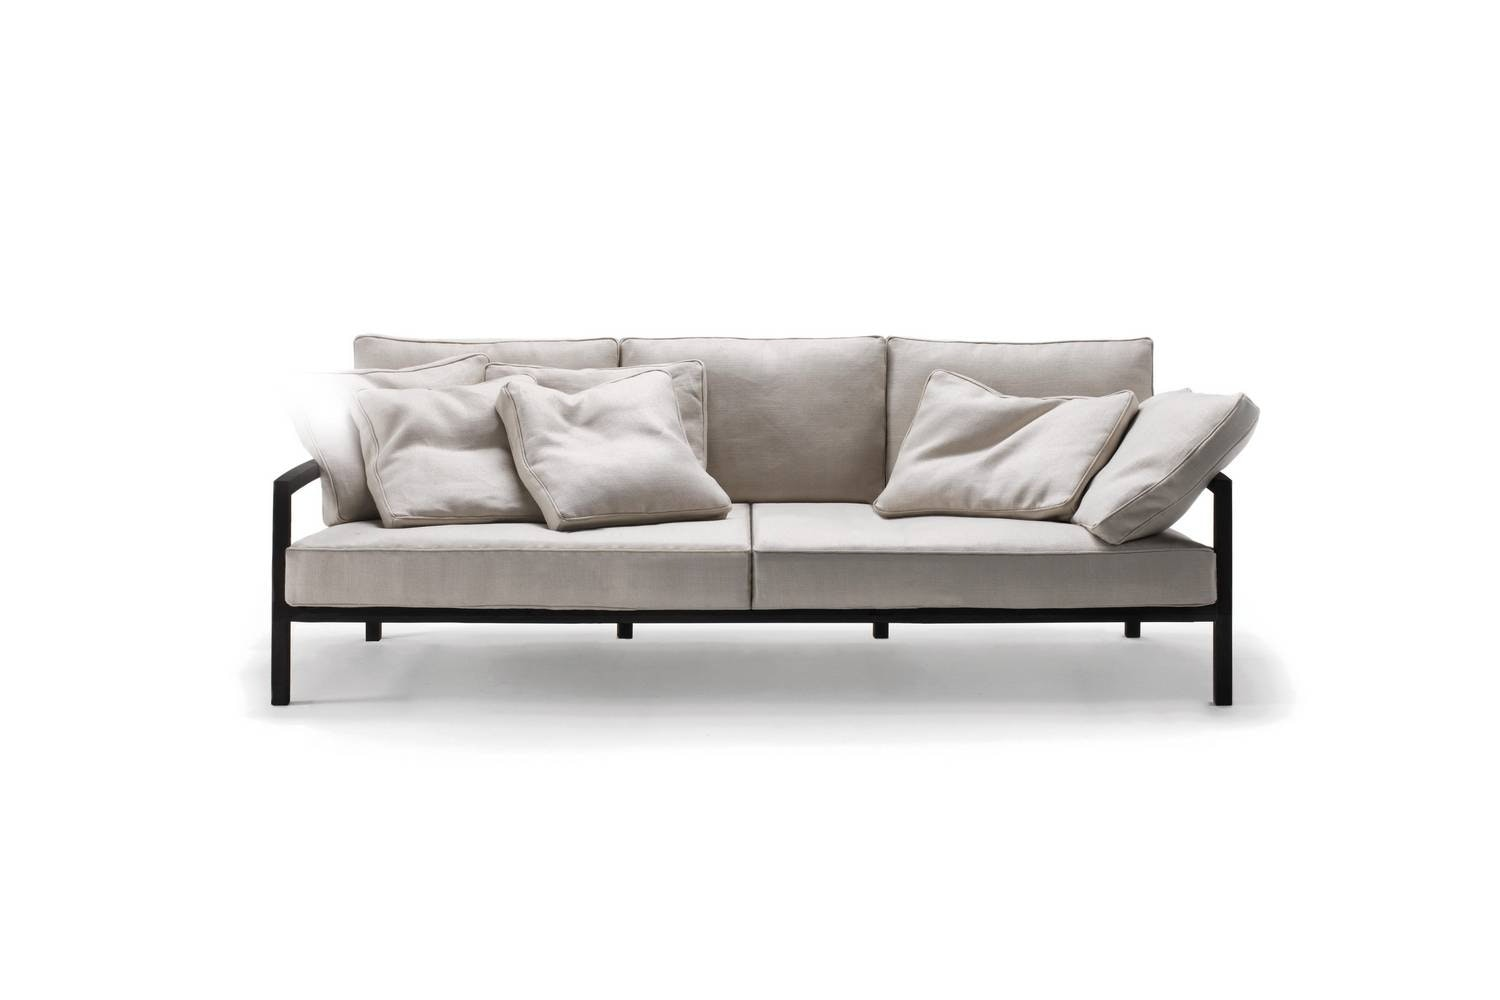 Chromatic Sofa by Piero Lissoni for Living Divani